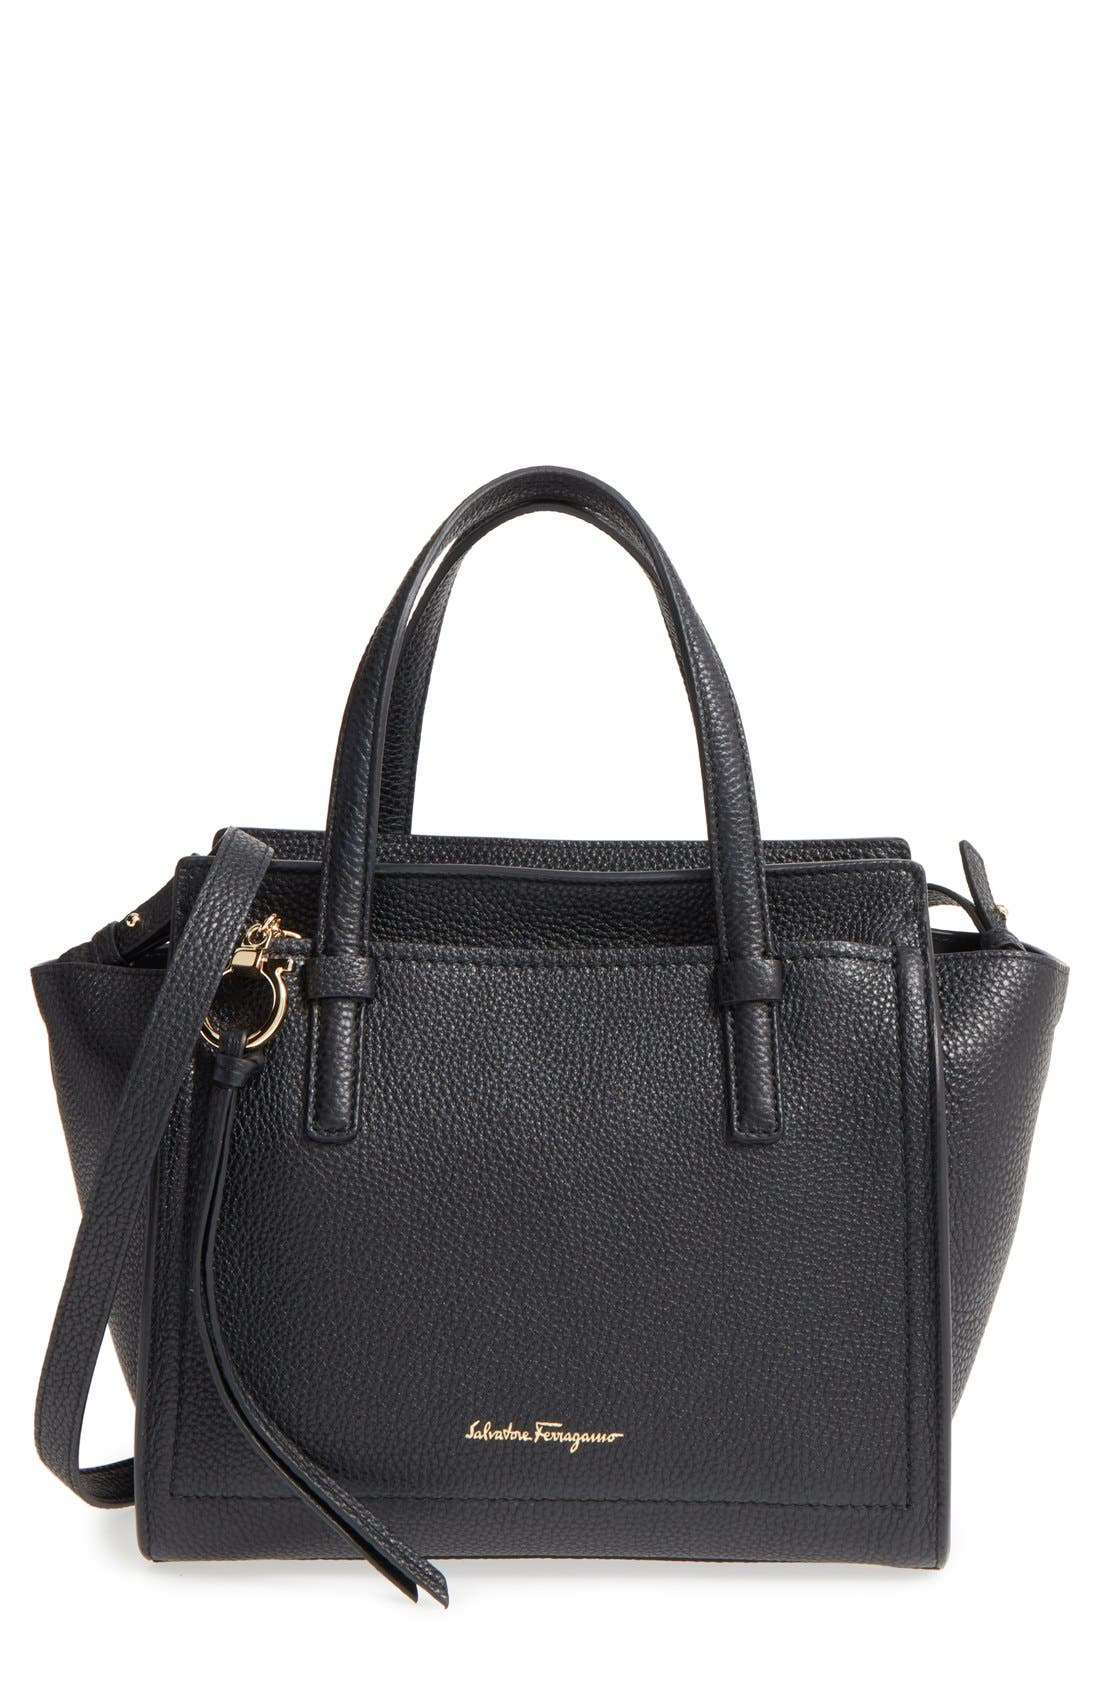 Main Image - Salvatore Ferragamo 'Small Amy' Tote